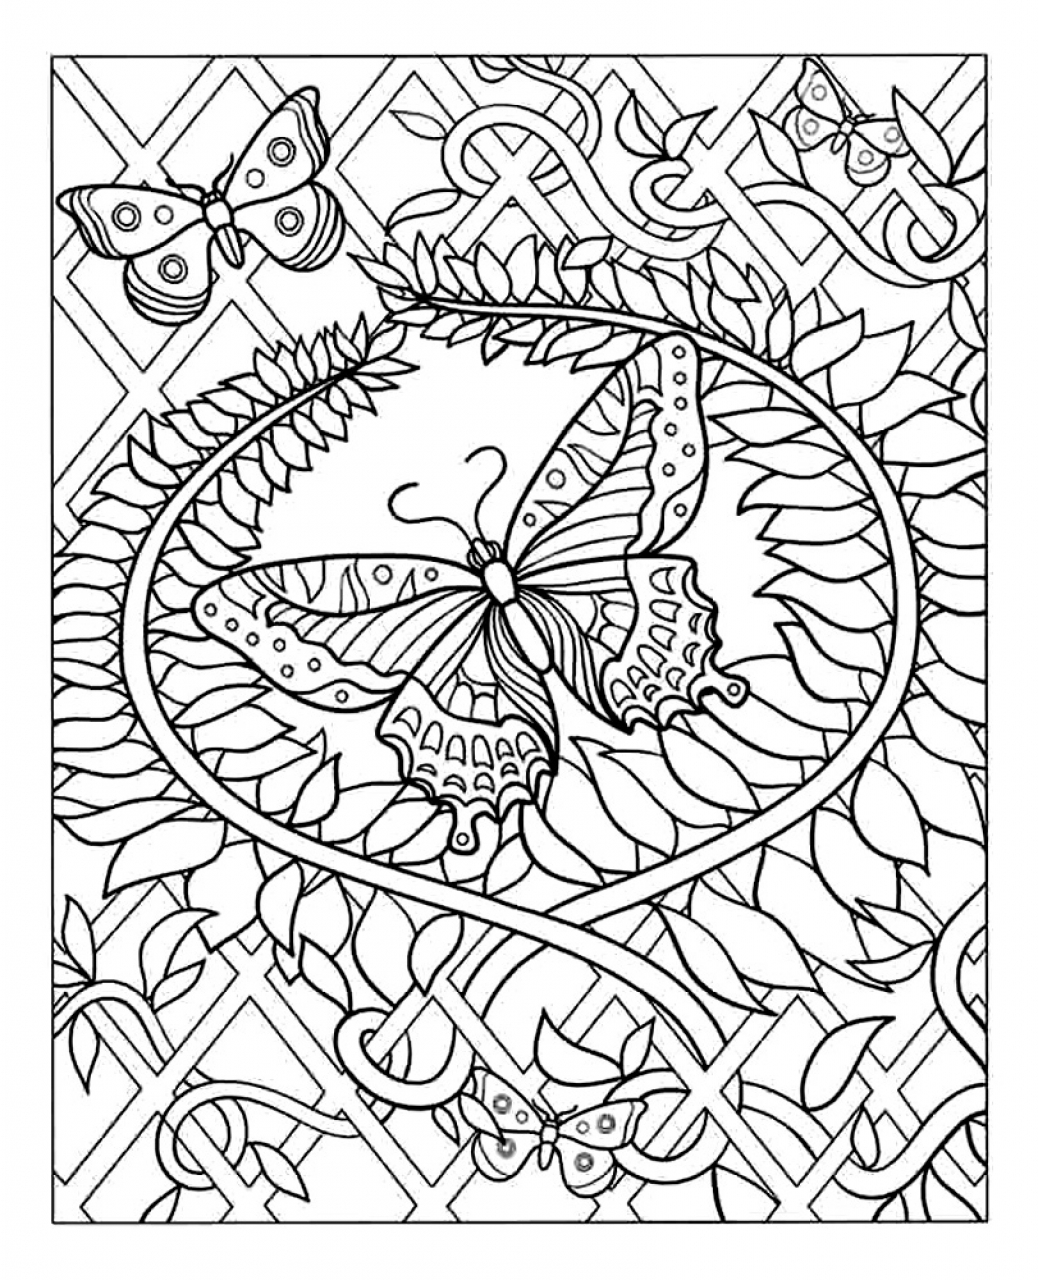 Coloring pages power rangers printable - Difficult Adult Coloring Pages To Print Out 45281